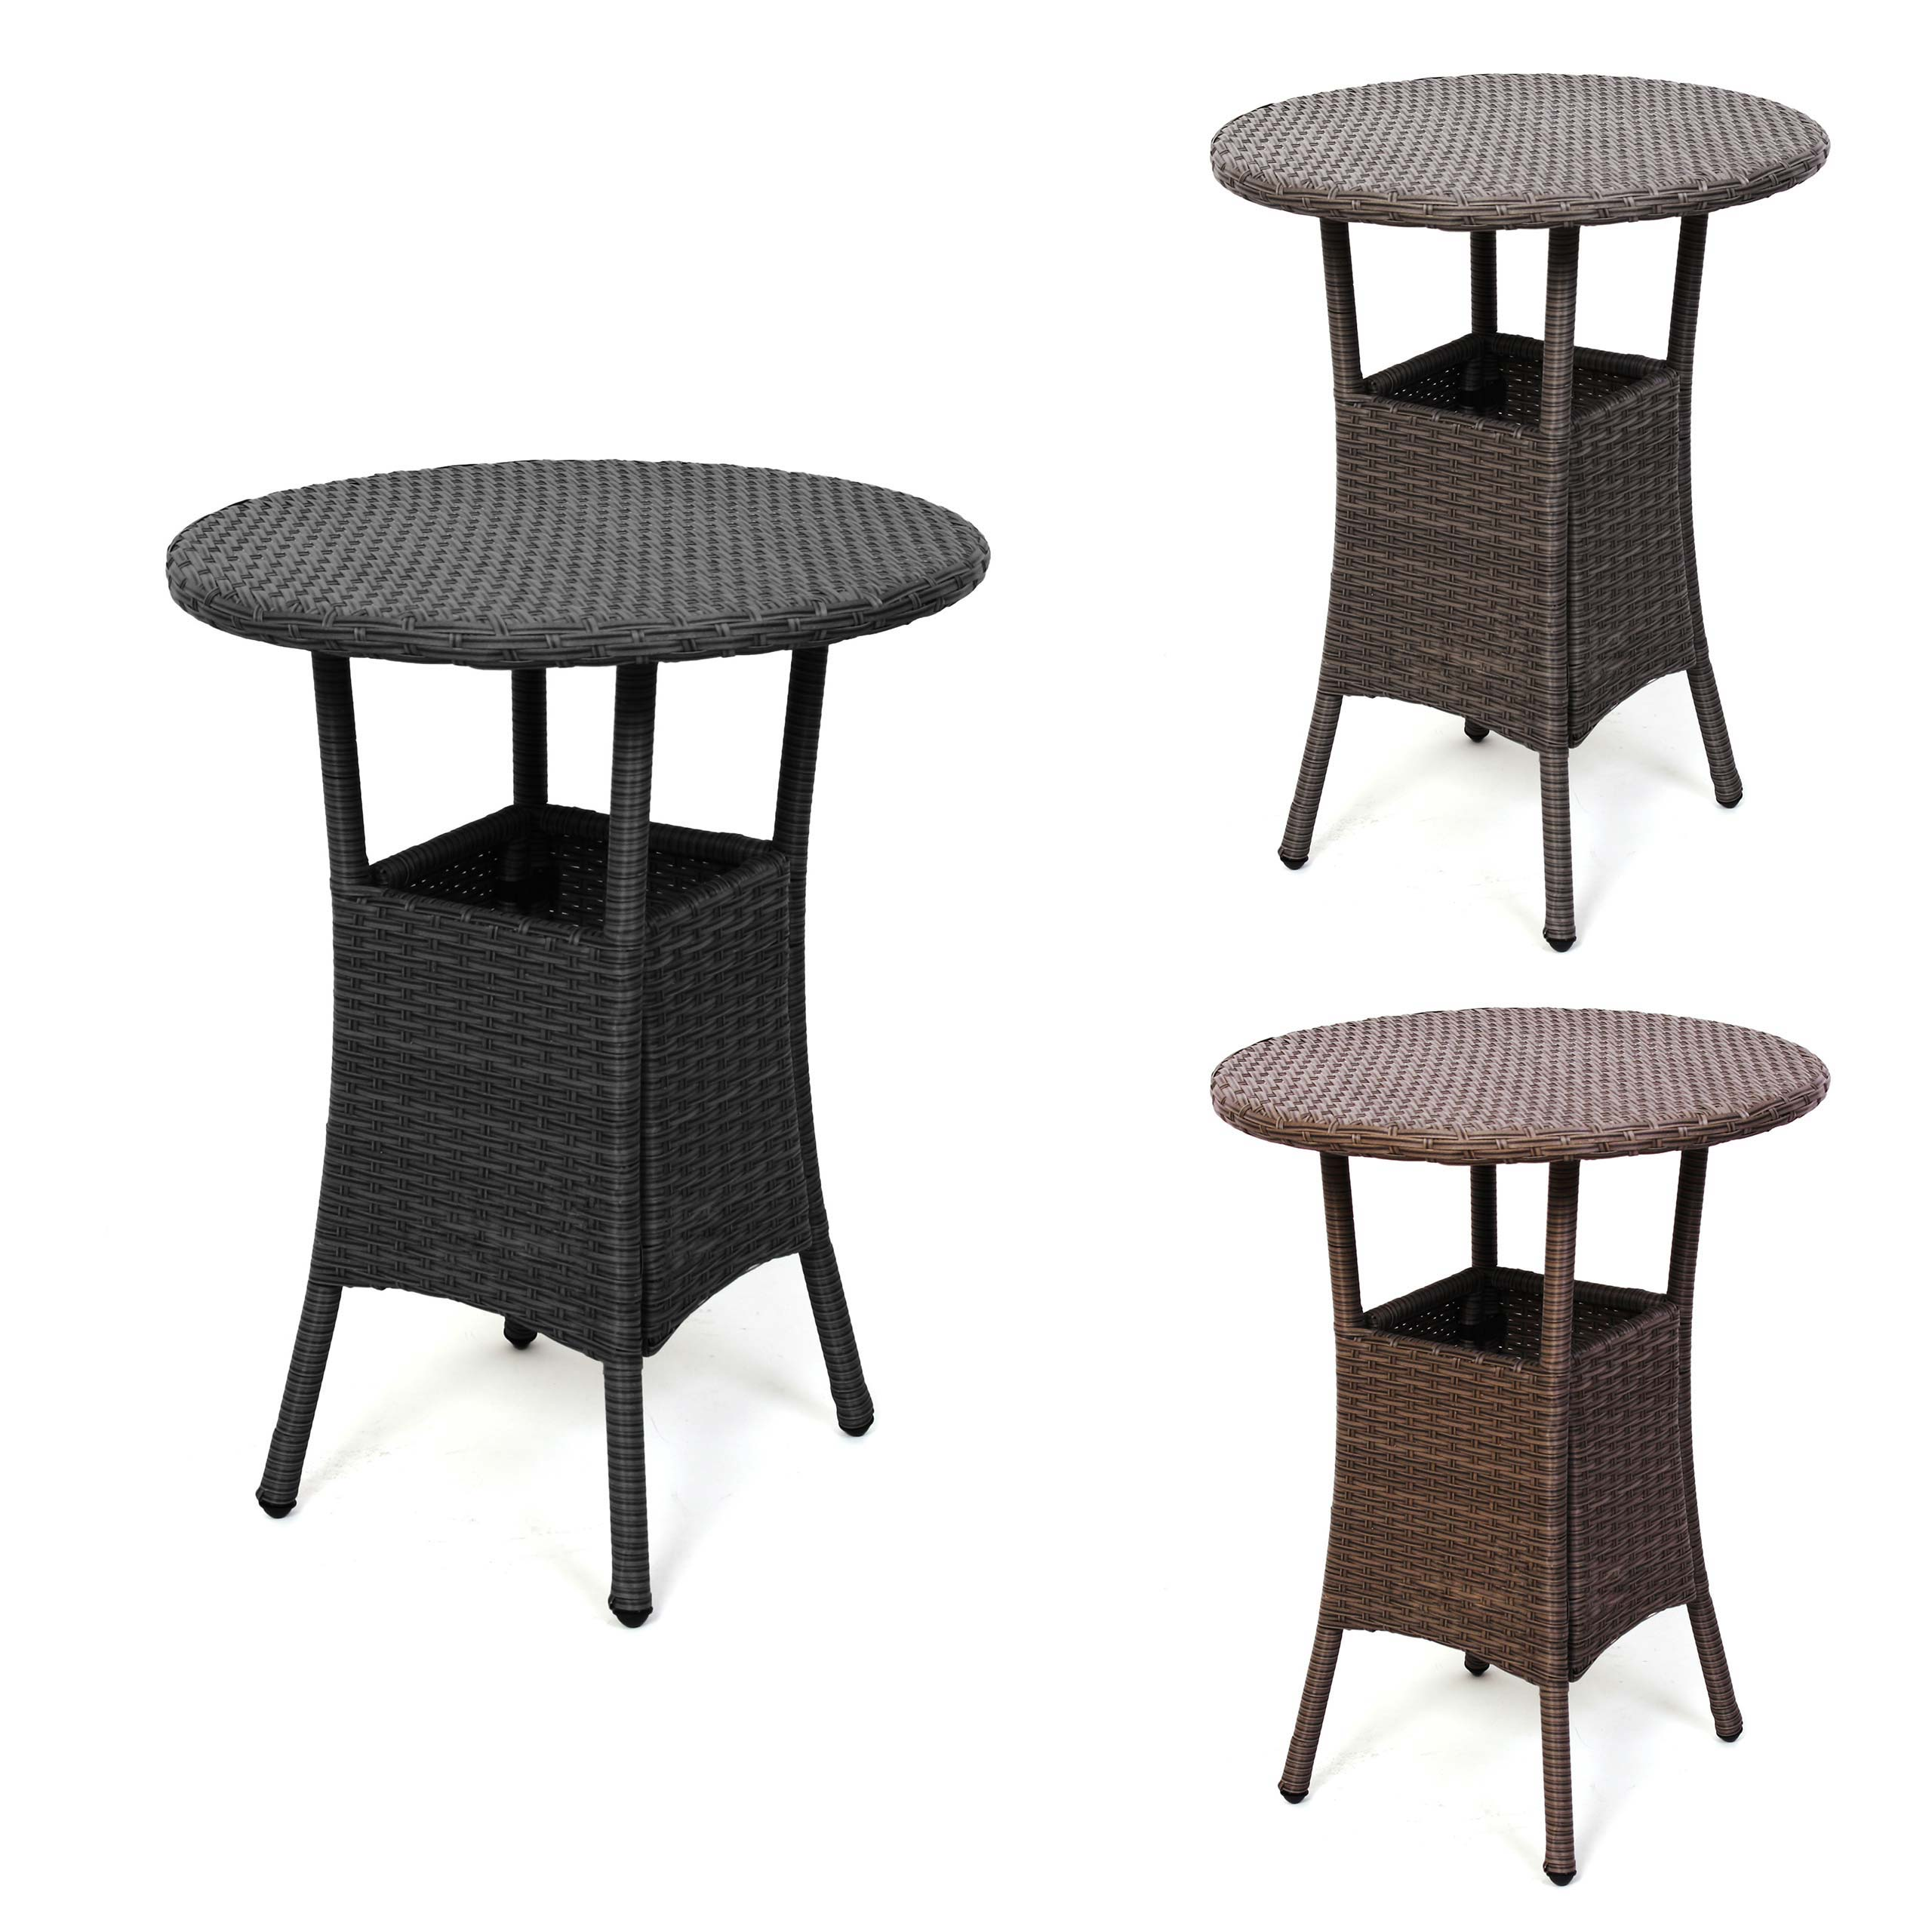 gartentisch beistelltisch romv poly rattan rund 75x60cm schwarz braun grau ebay. Black Bedroom Furniture Sets. Home Design Ideas